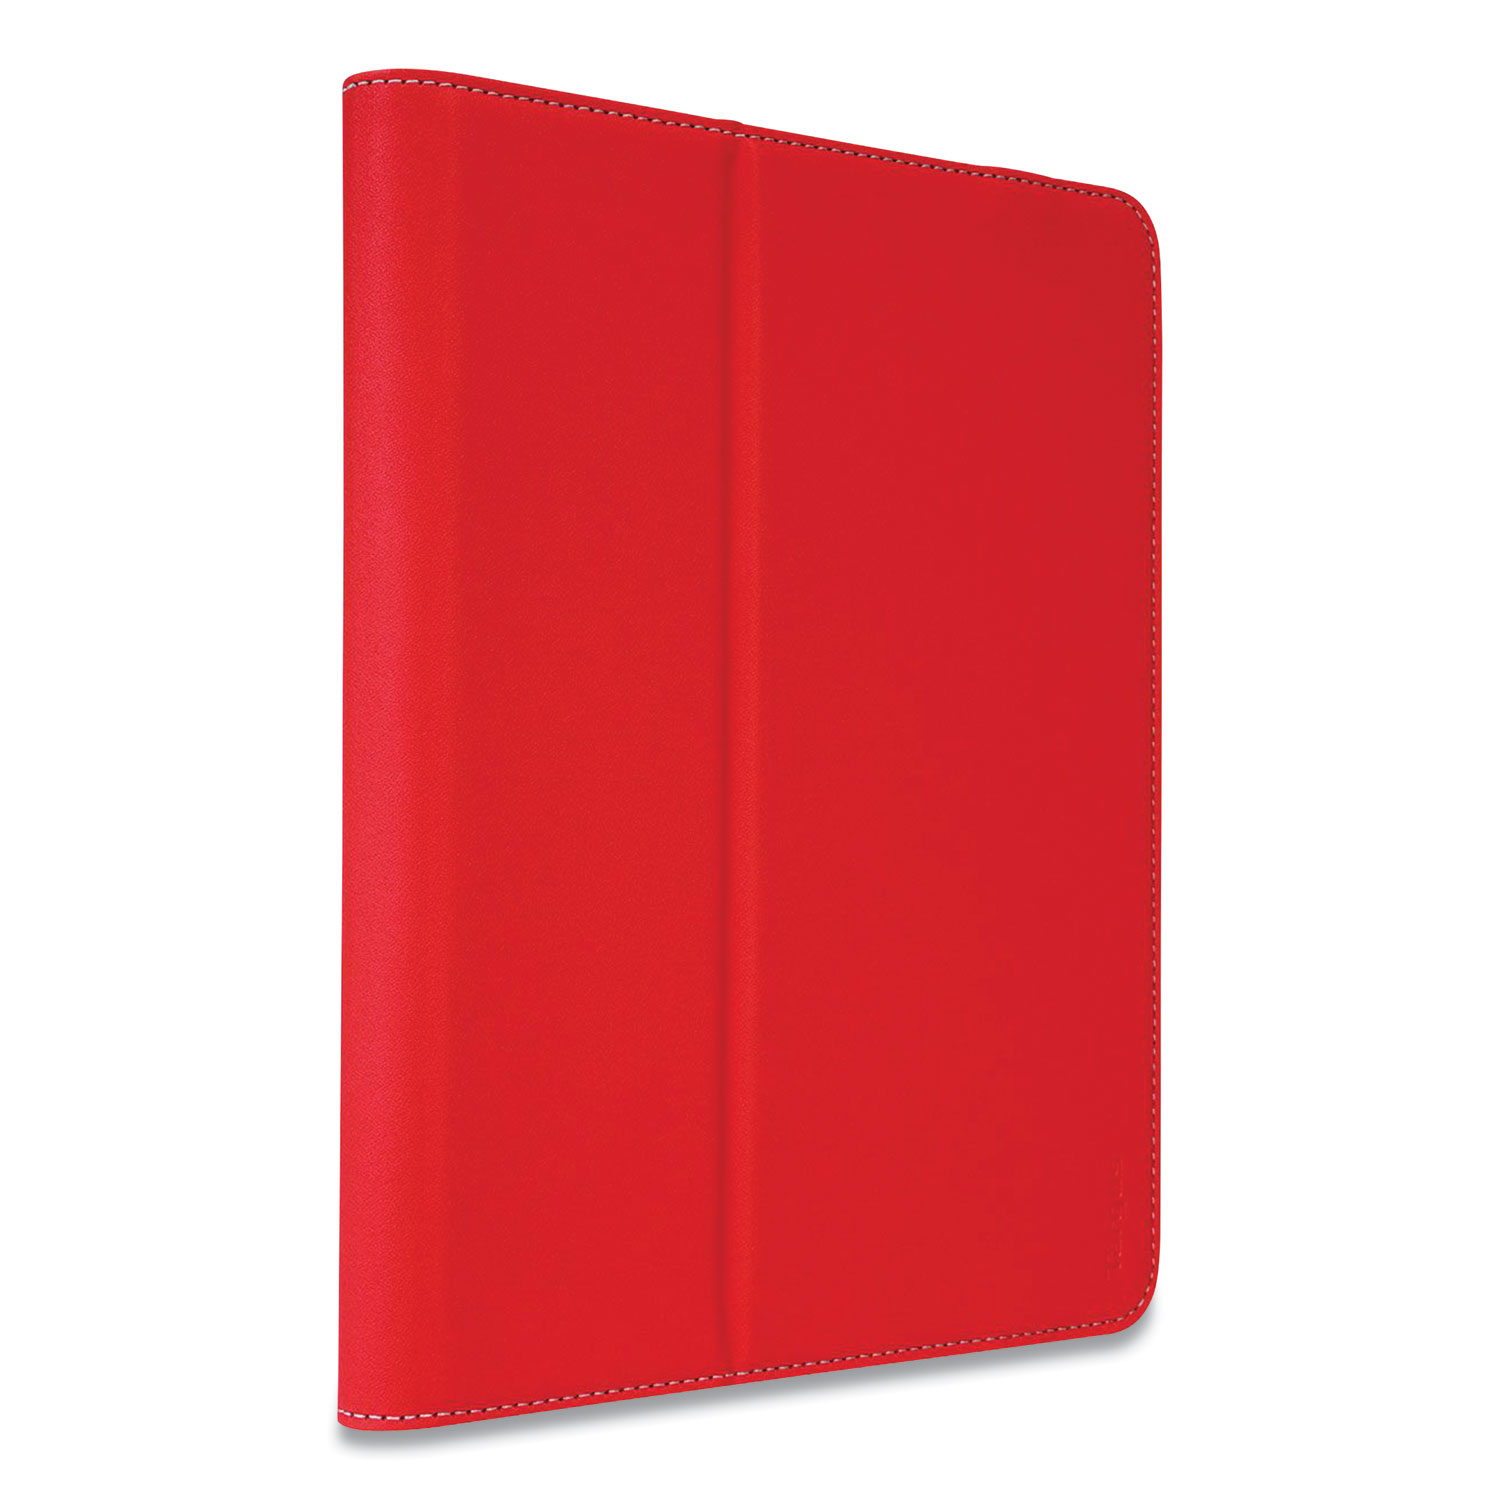 Targus® Versavu Classic 360 Degree Case for iPad 5th Gen/6th Gen/iPad Air/iPad Air 2/iPad Pro 9.7, Red